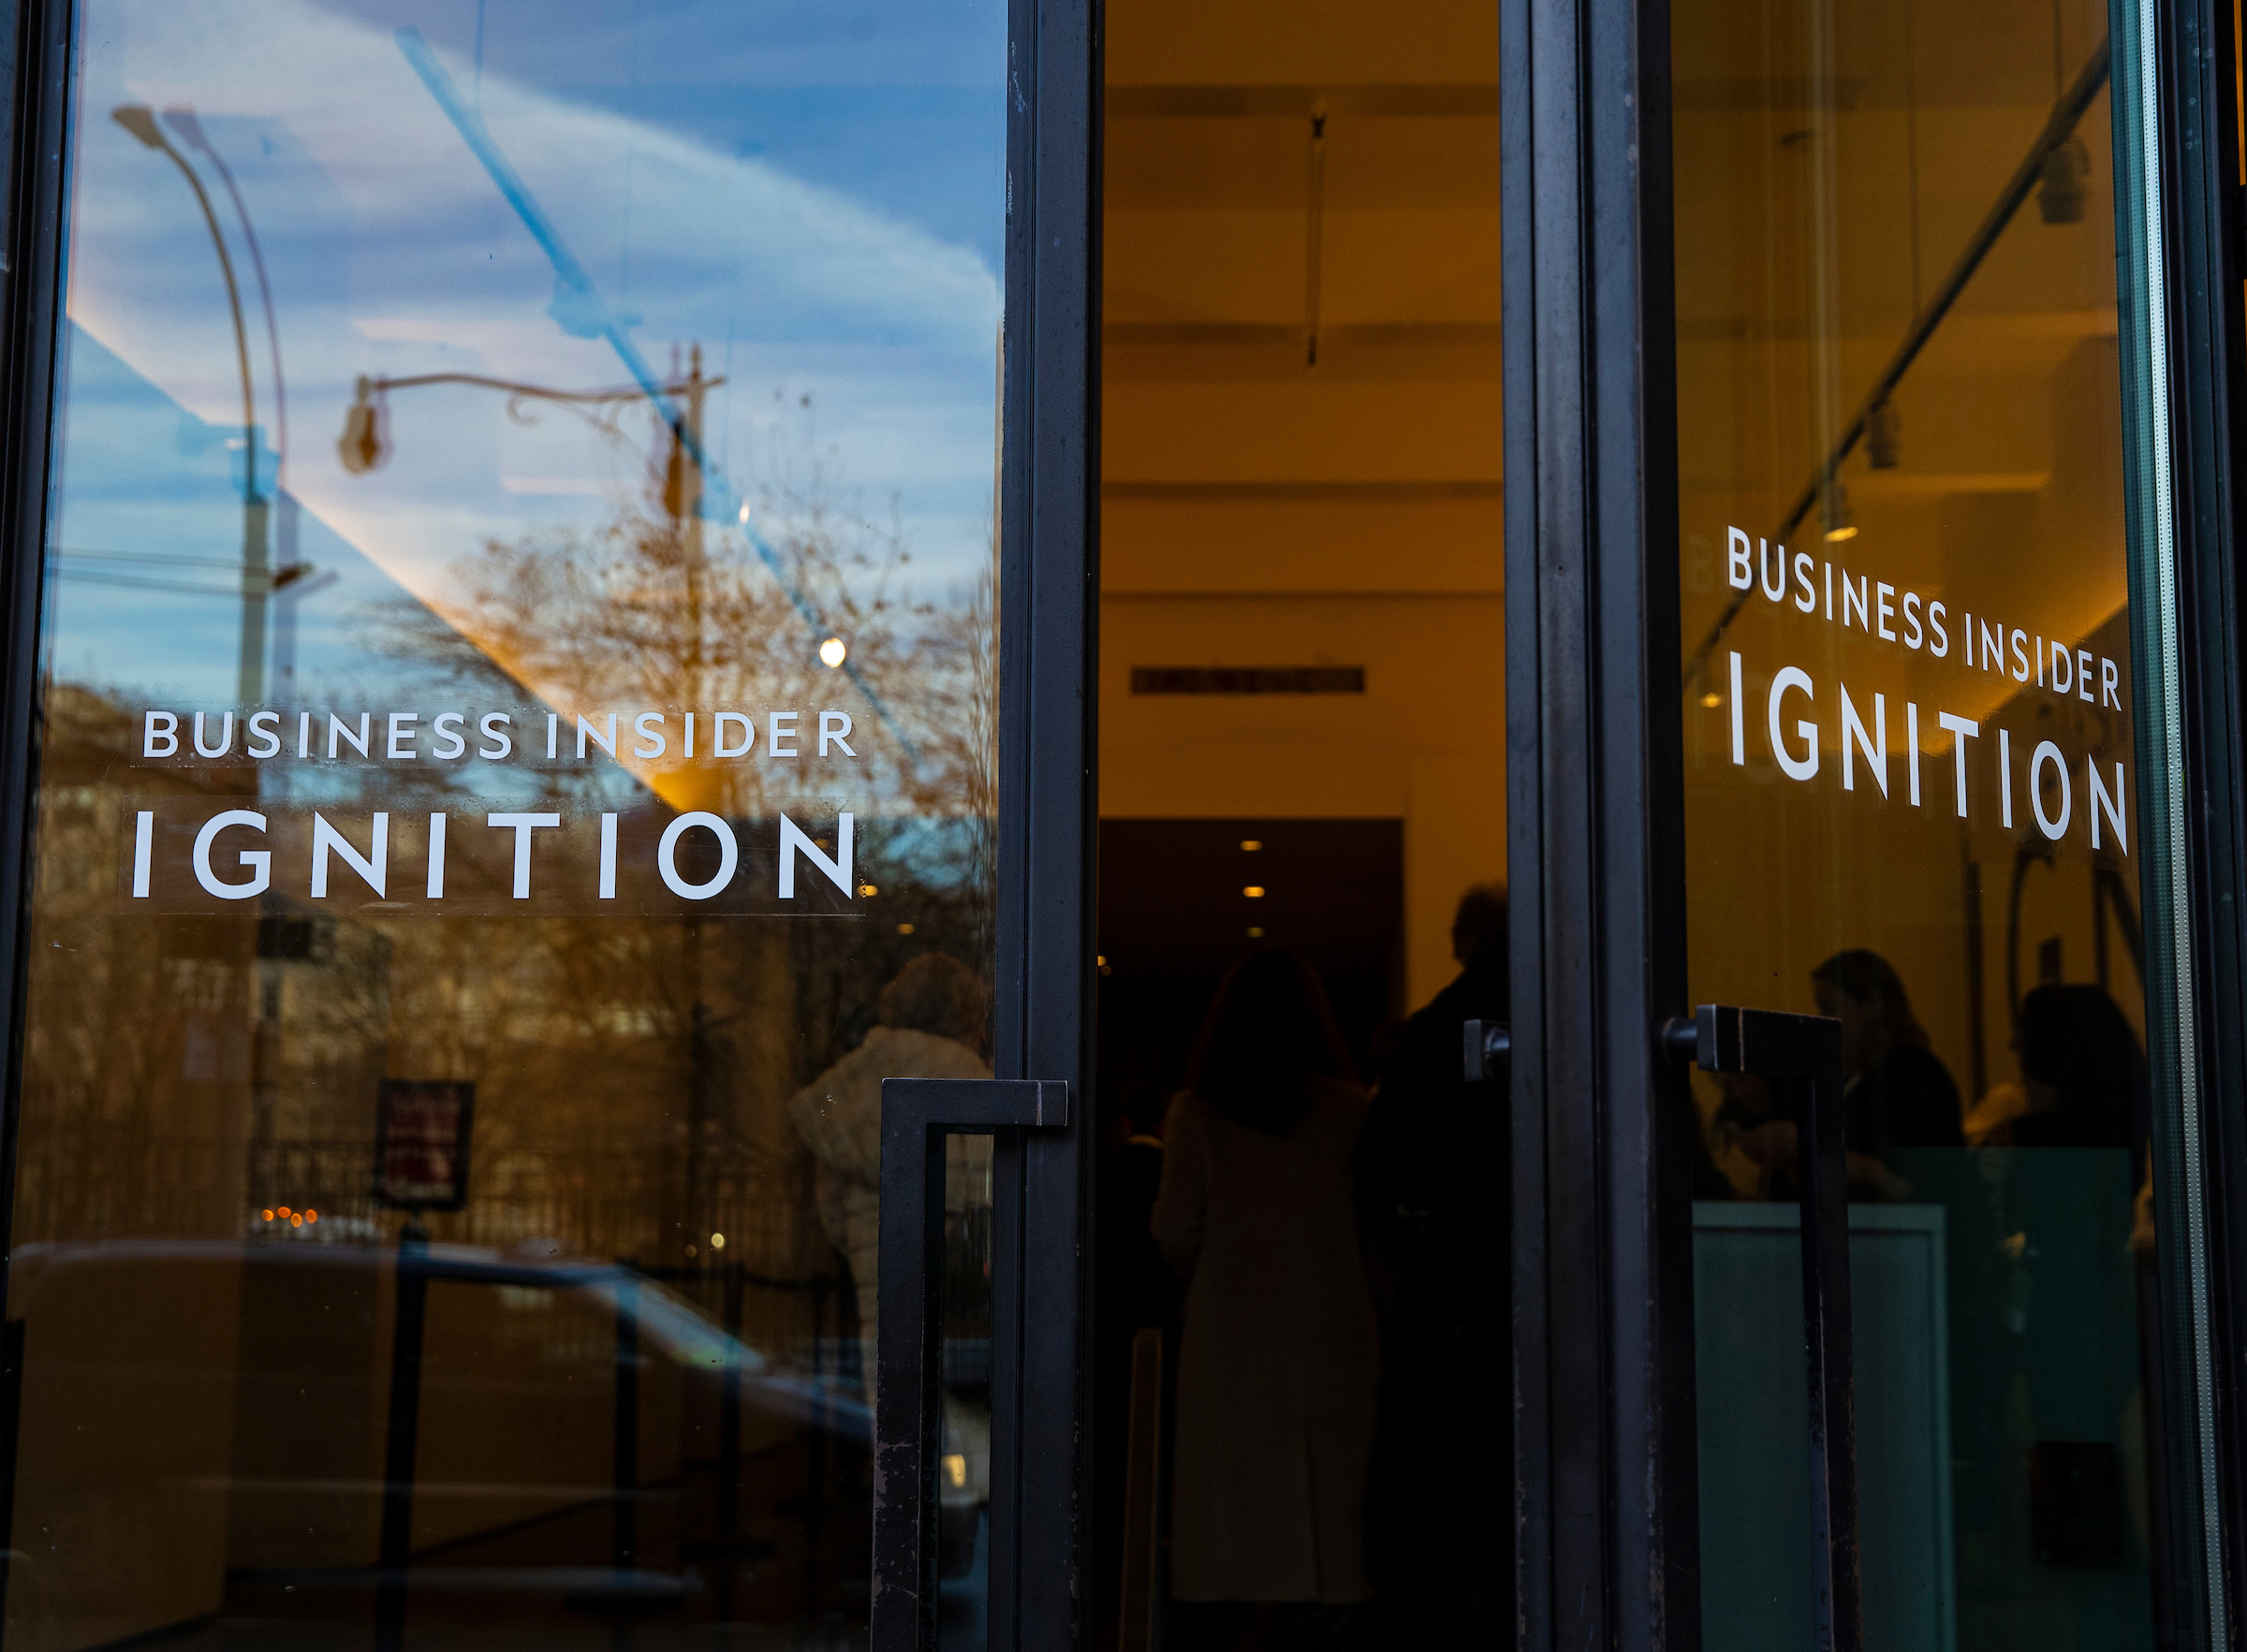 JL_IGNITION2018DAY1_135.jpg